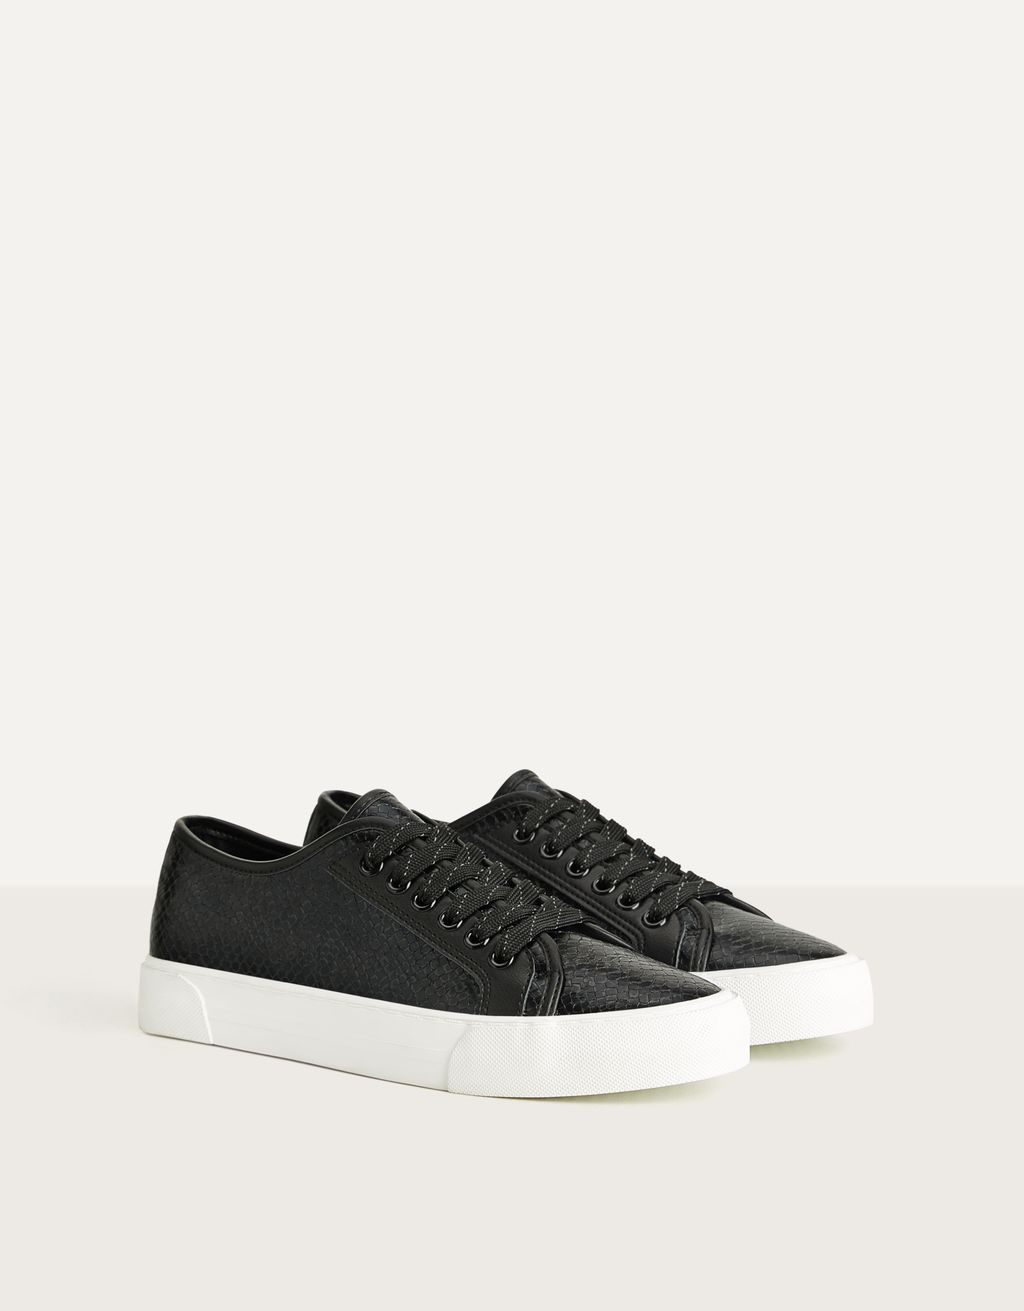 Embossed animal print sneakers